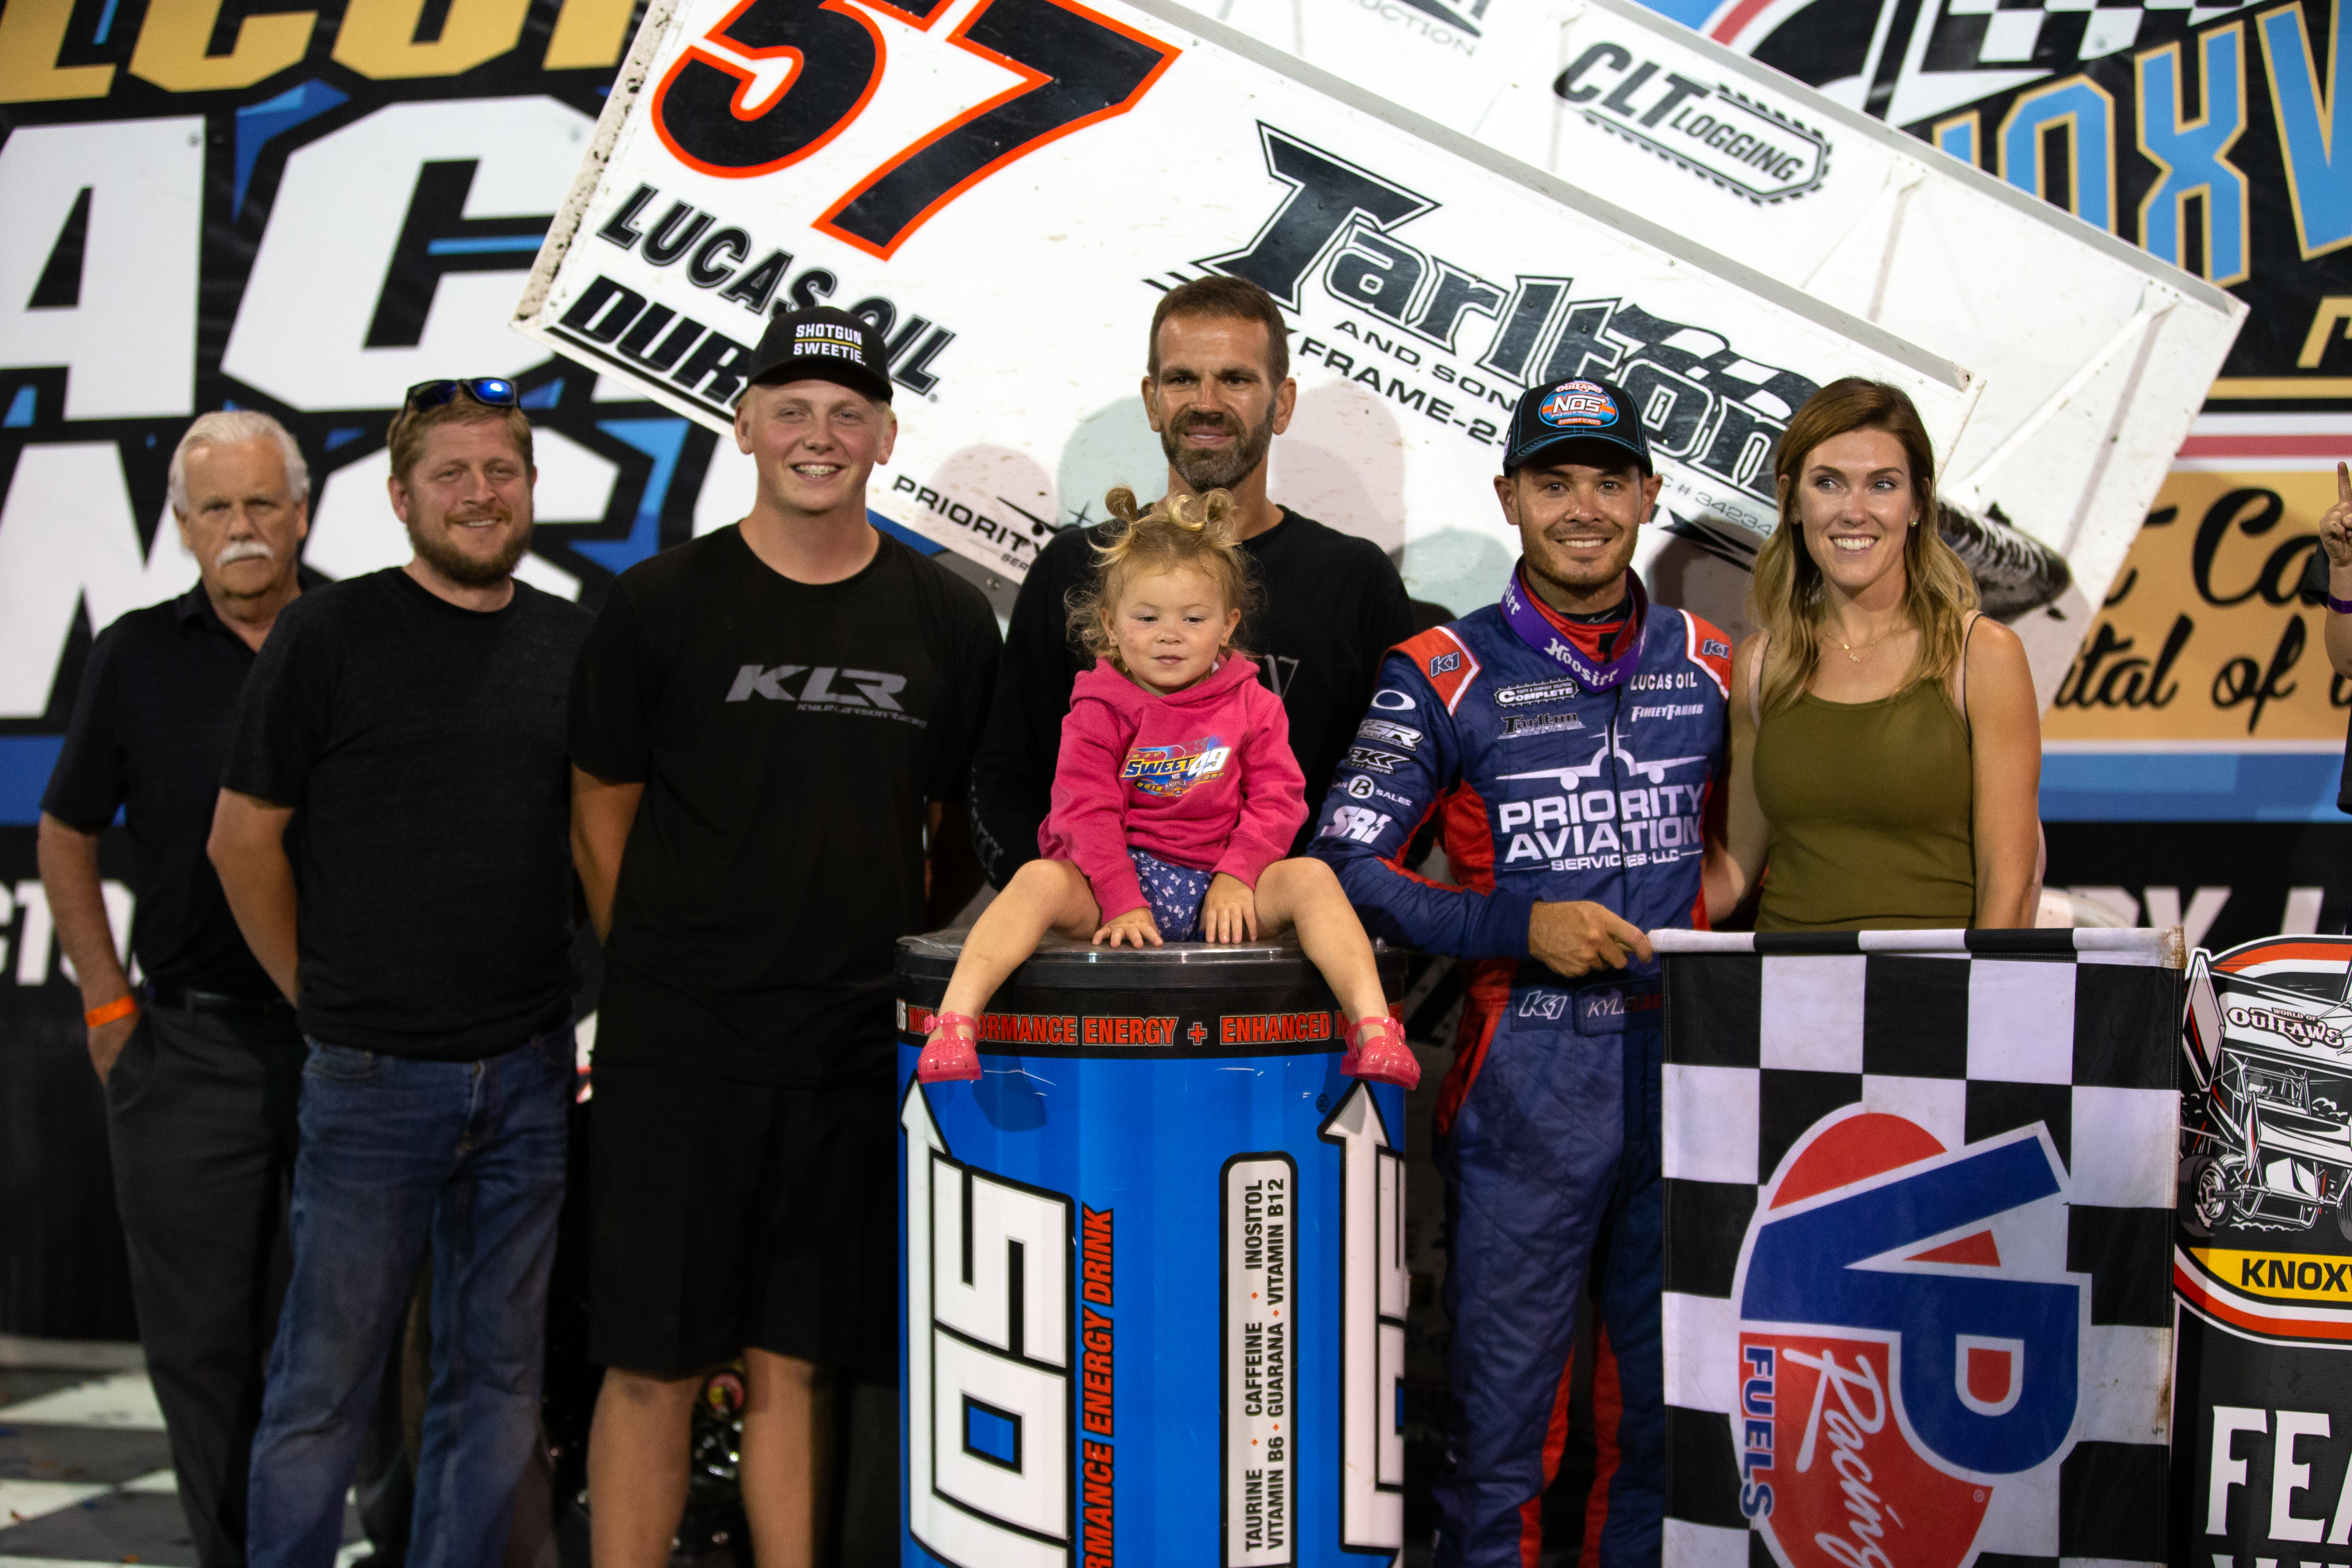 Kyle Larson wins Knoxville